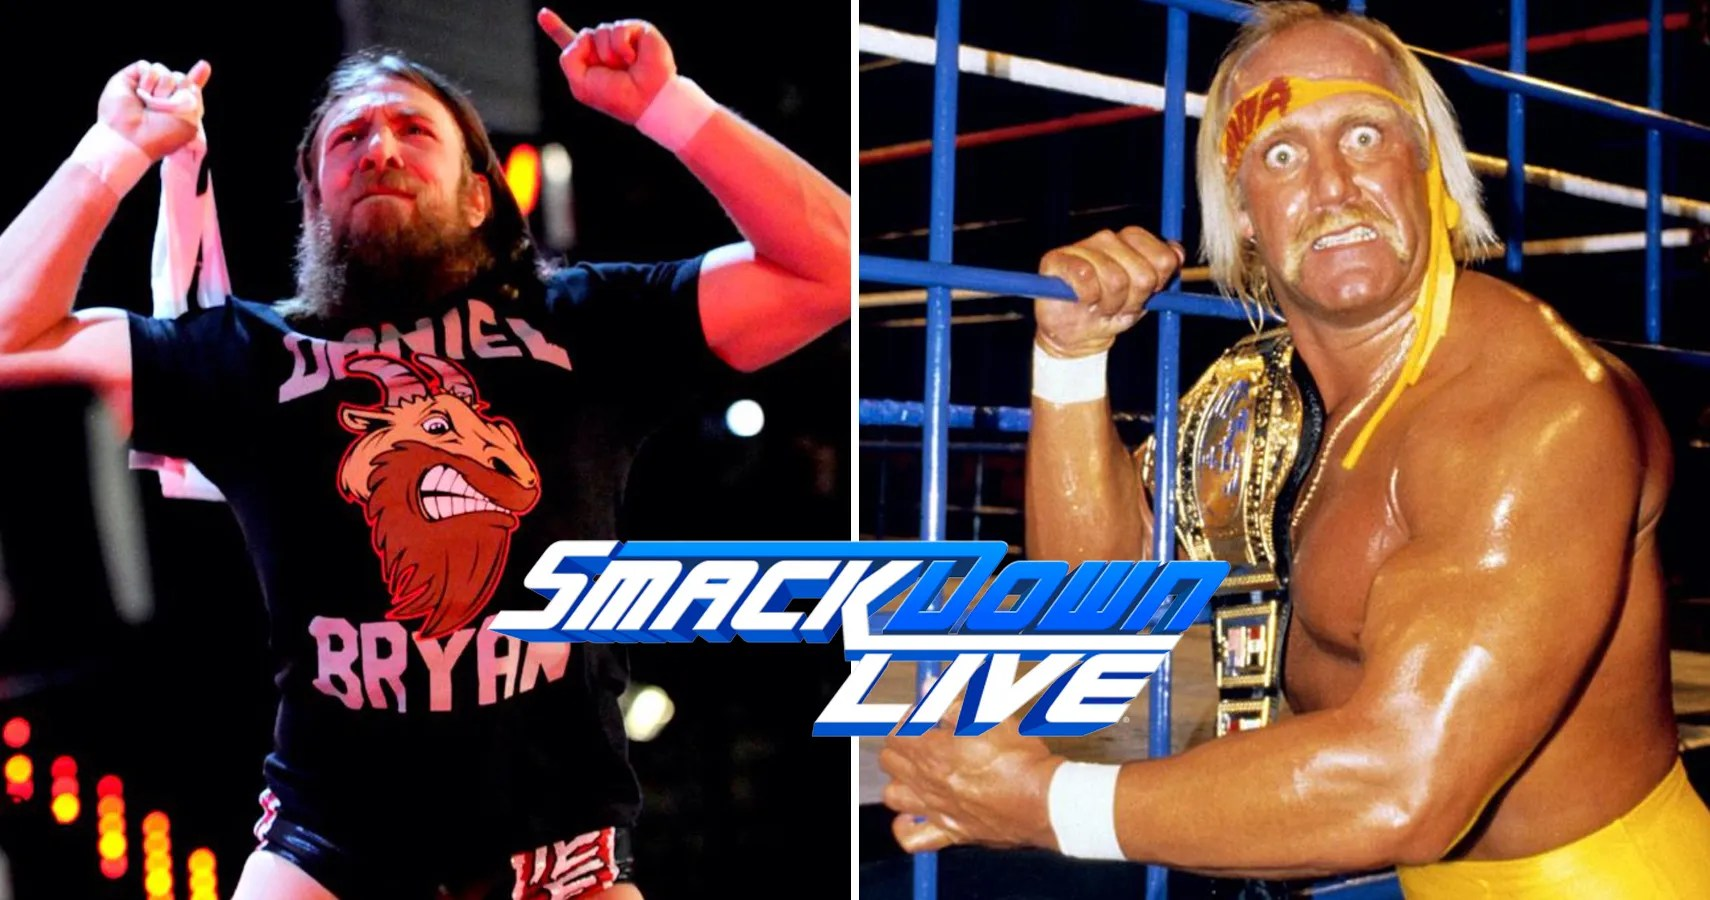 Hulk Hogan 2017 Difficult Decisions Wwe Must Make To Save Smackdown Live